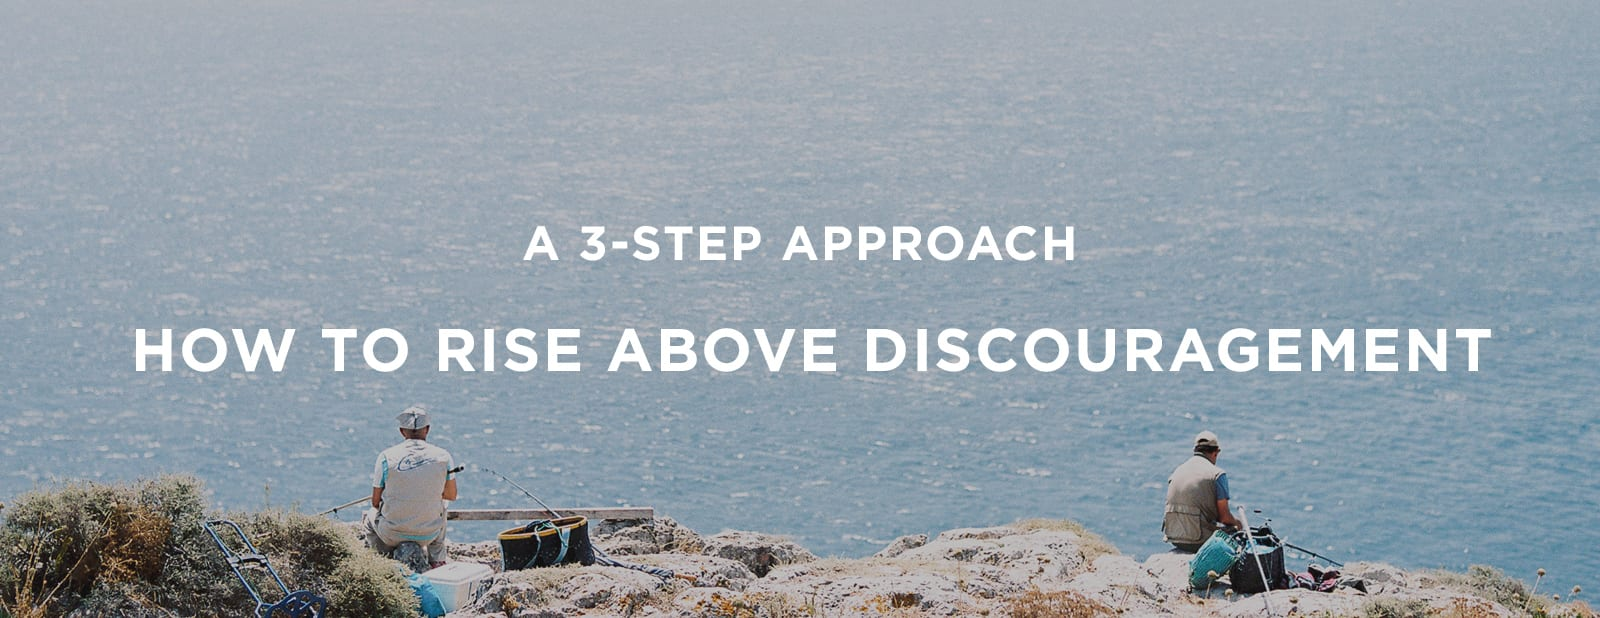 How to Rise Above Discouragement | via the Rising Tide Society